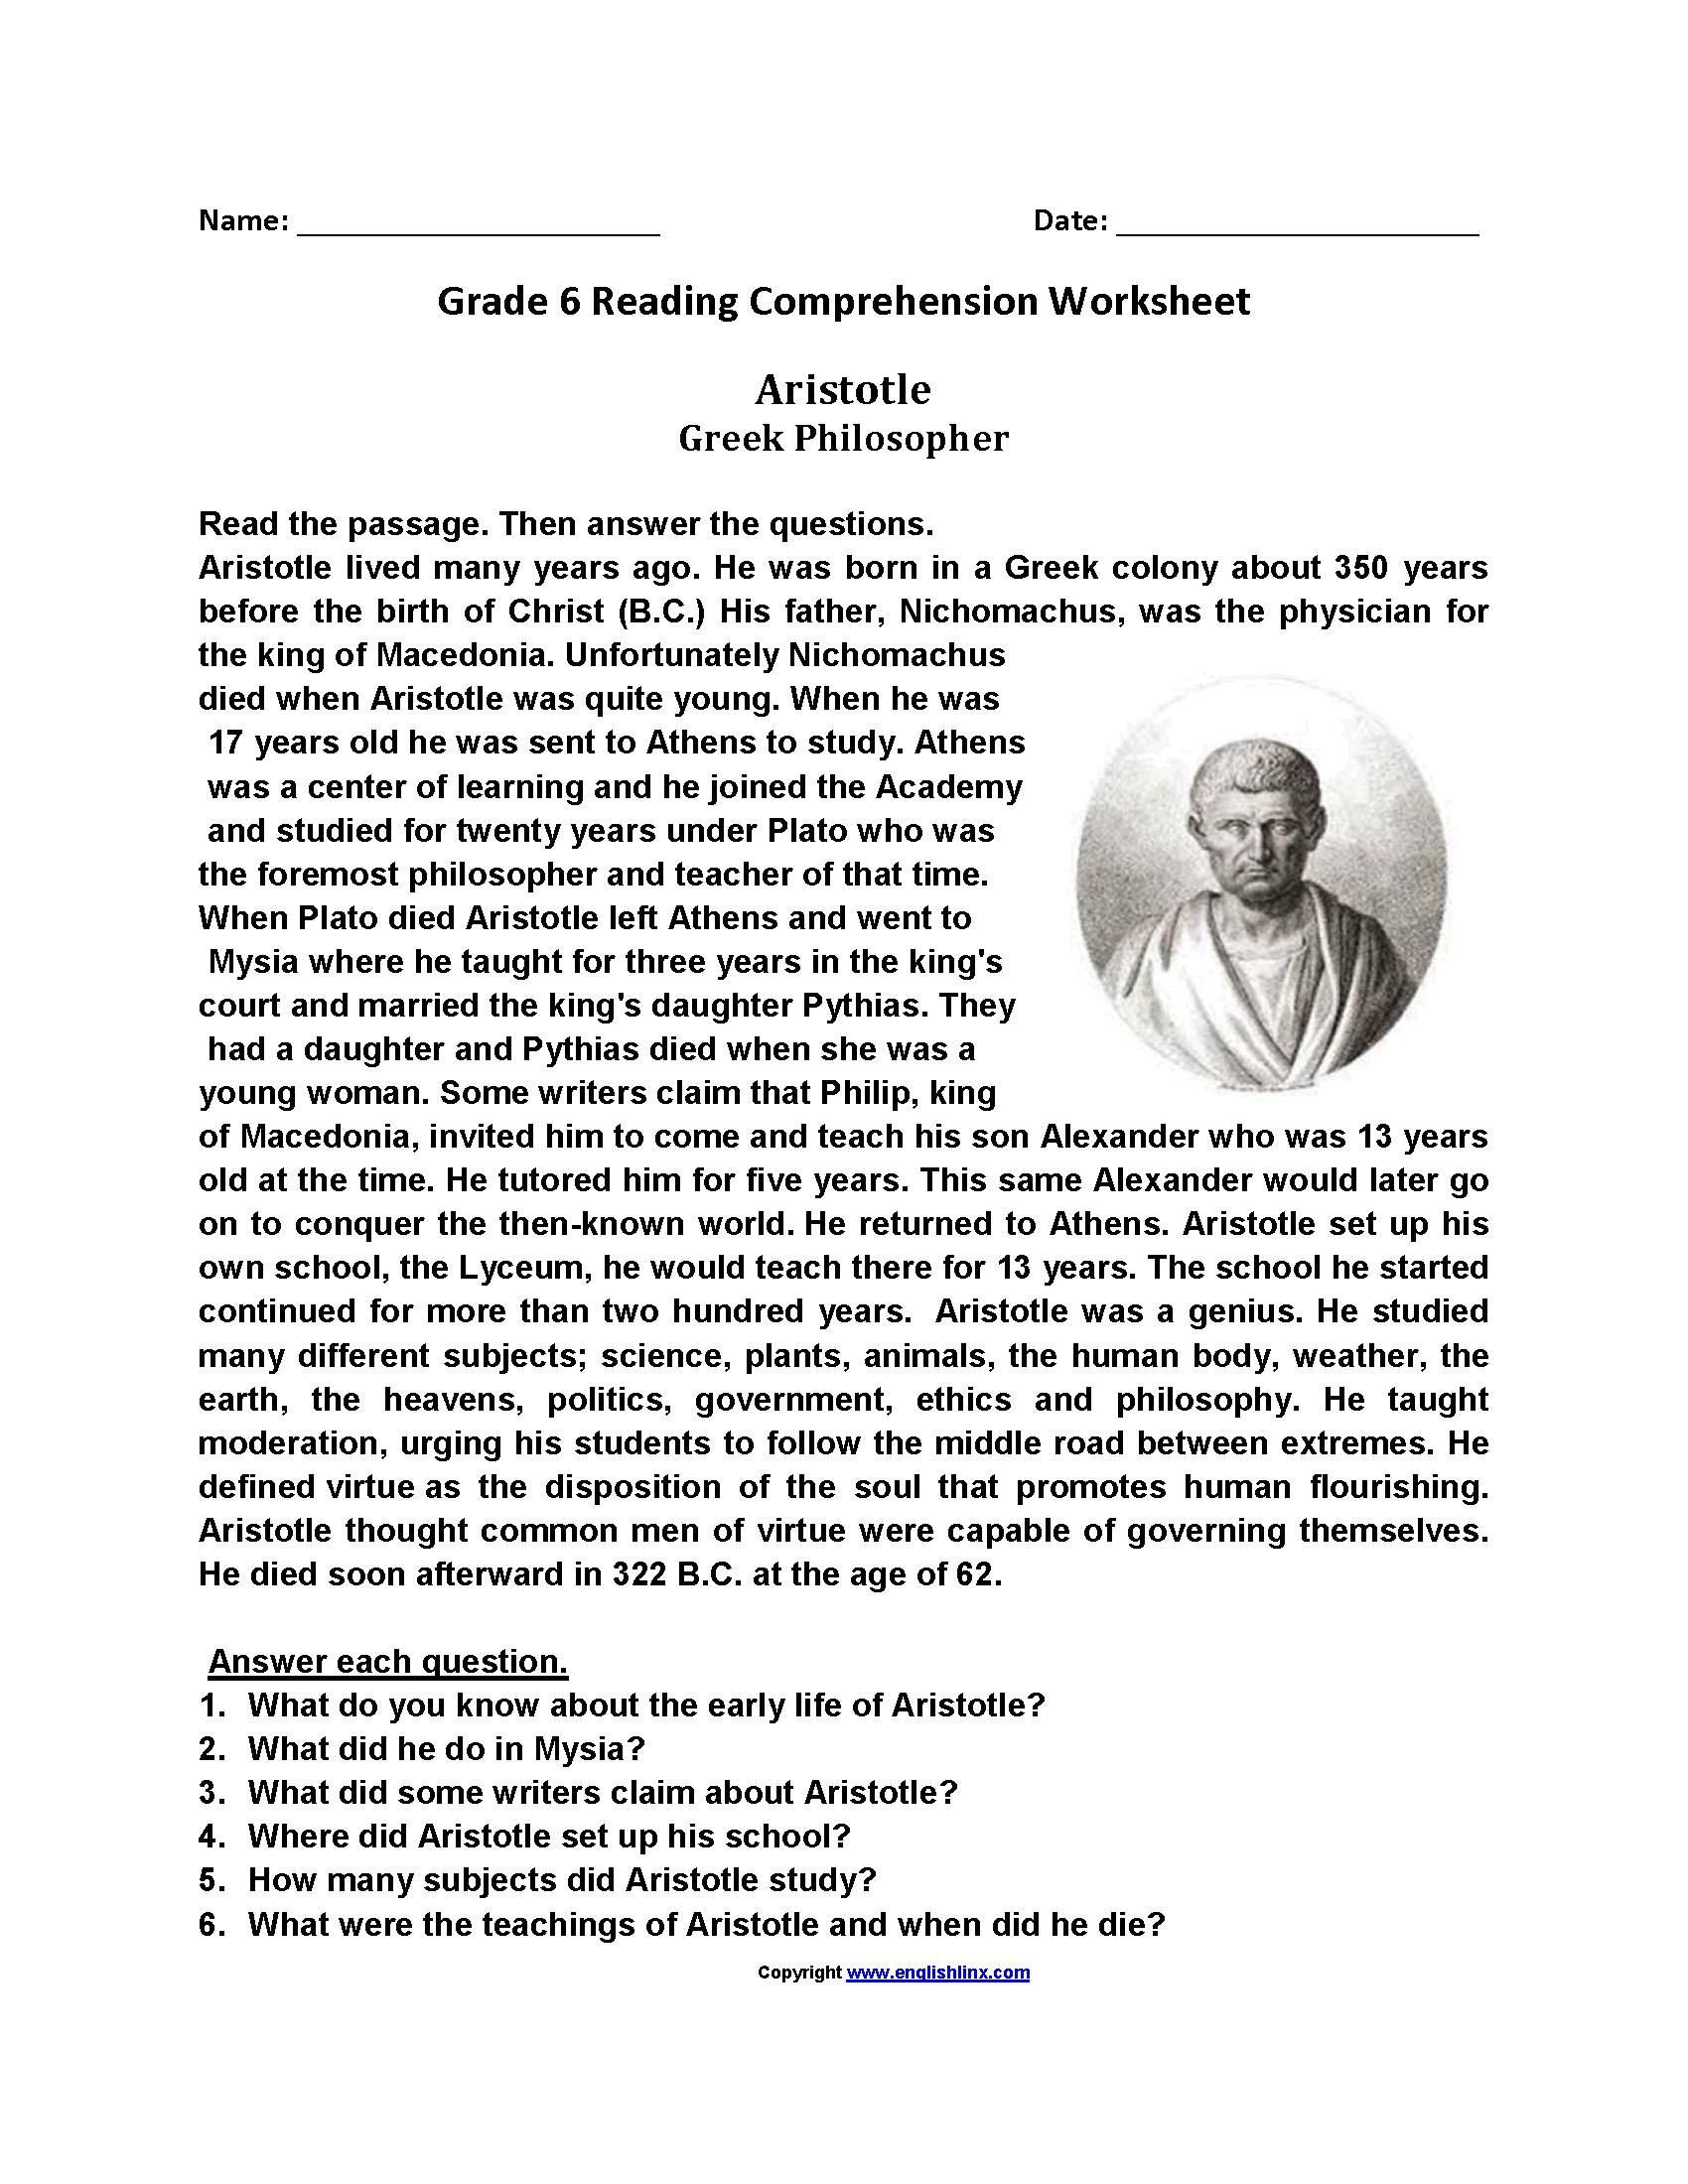 6th Grade Reading Worksheets Free Printable Reading Worksheets for Grade 6 в 2020 г